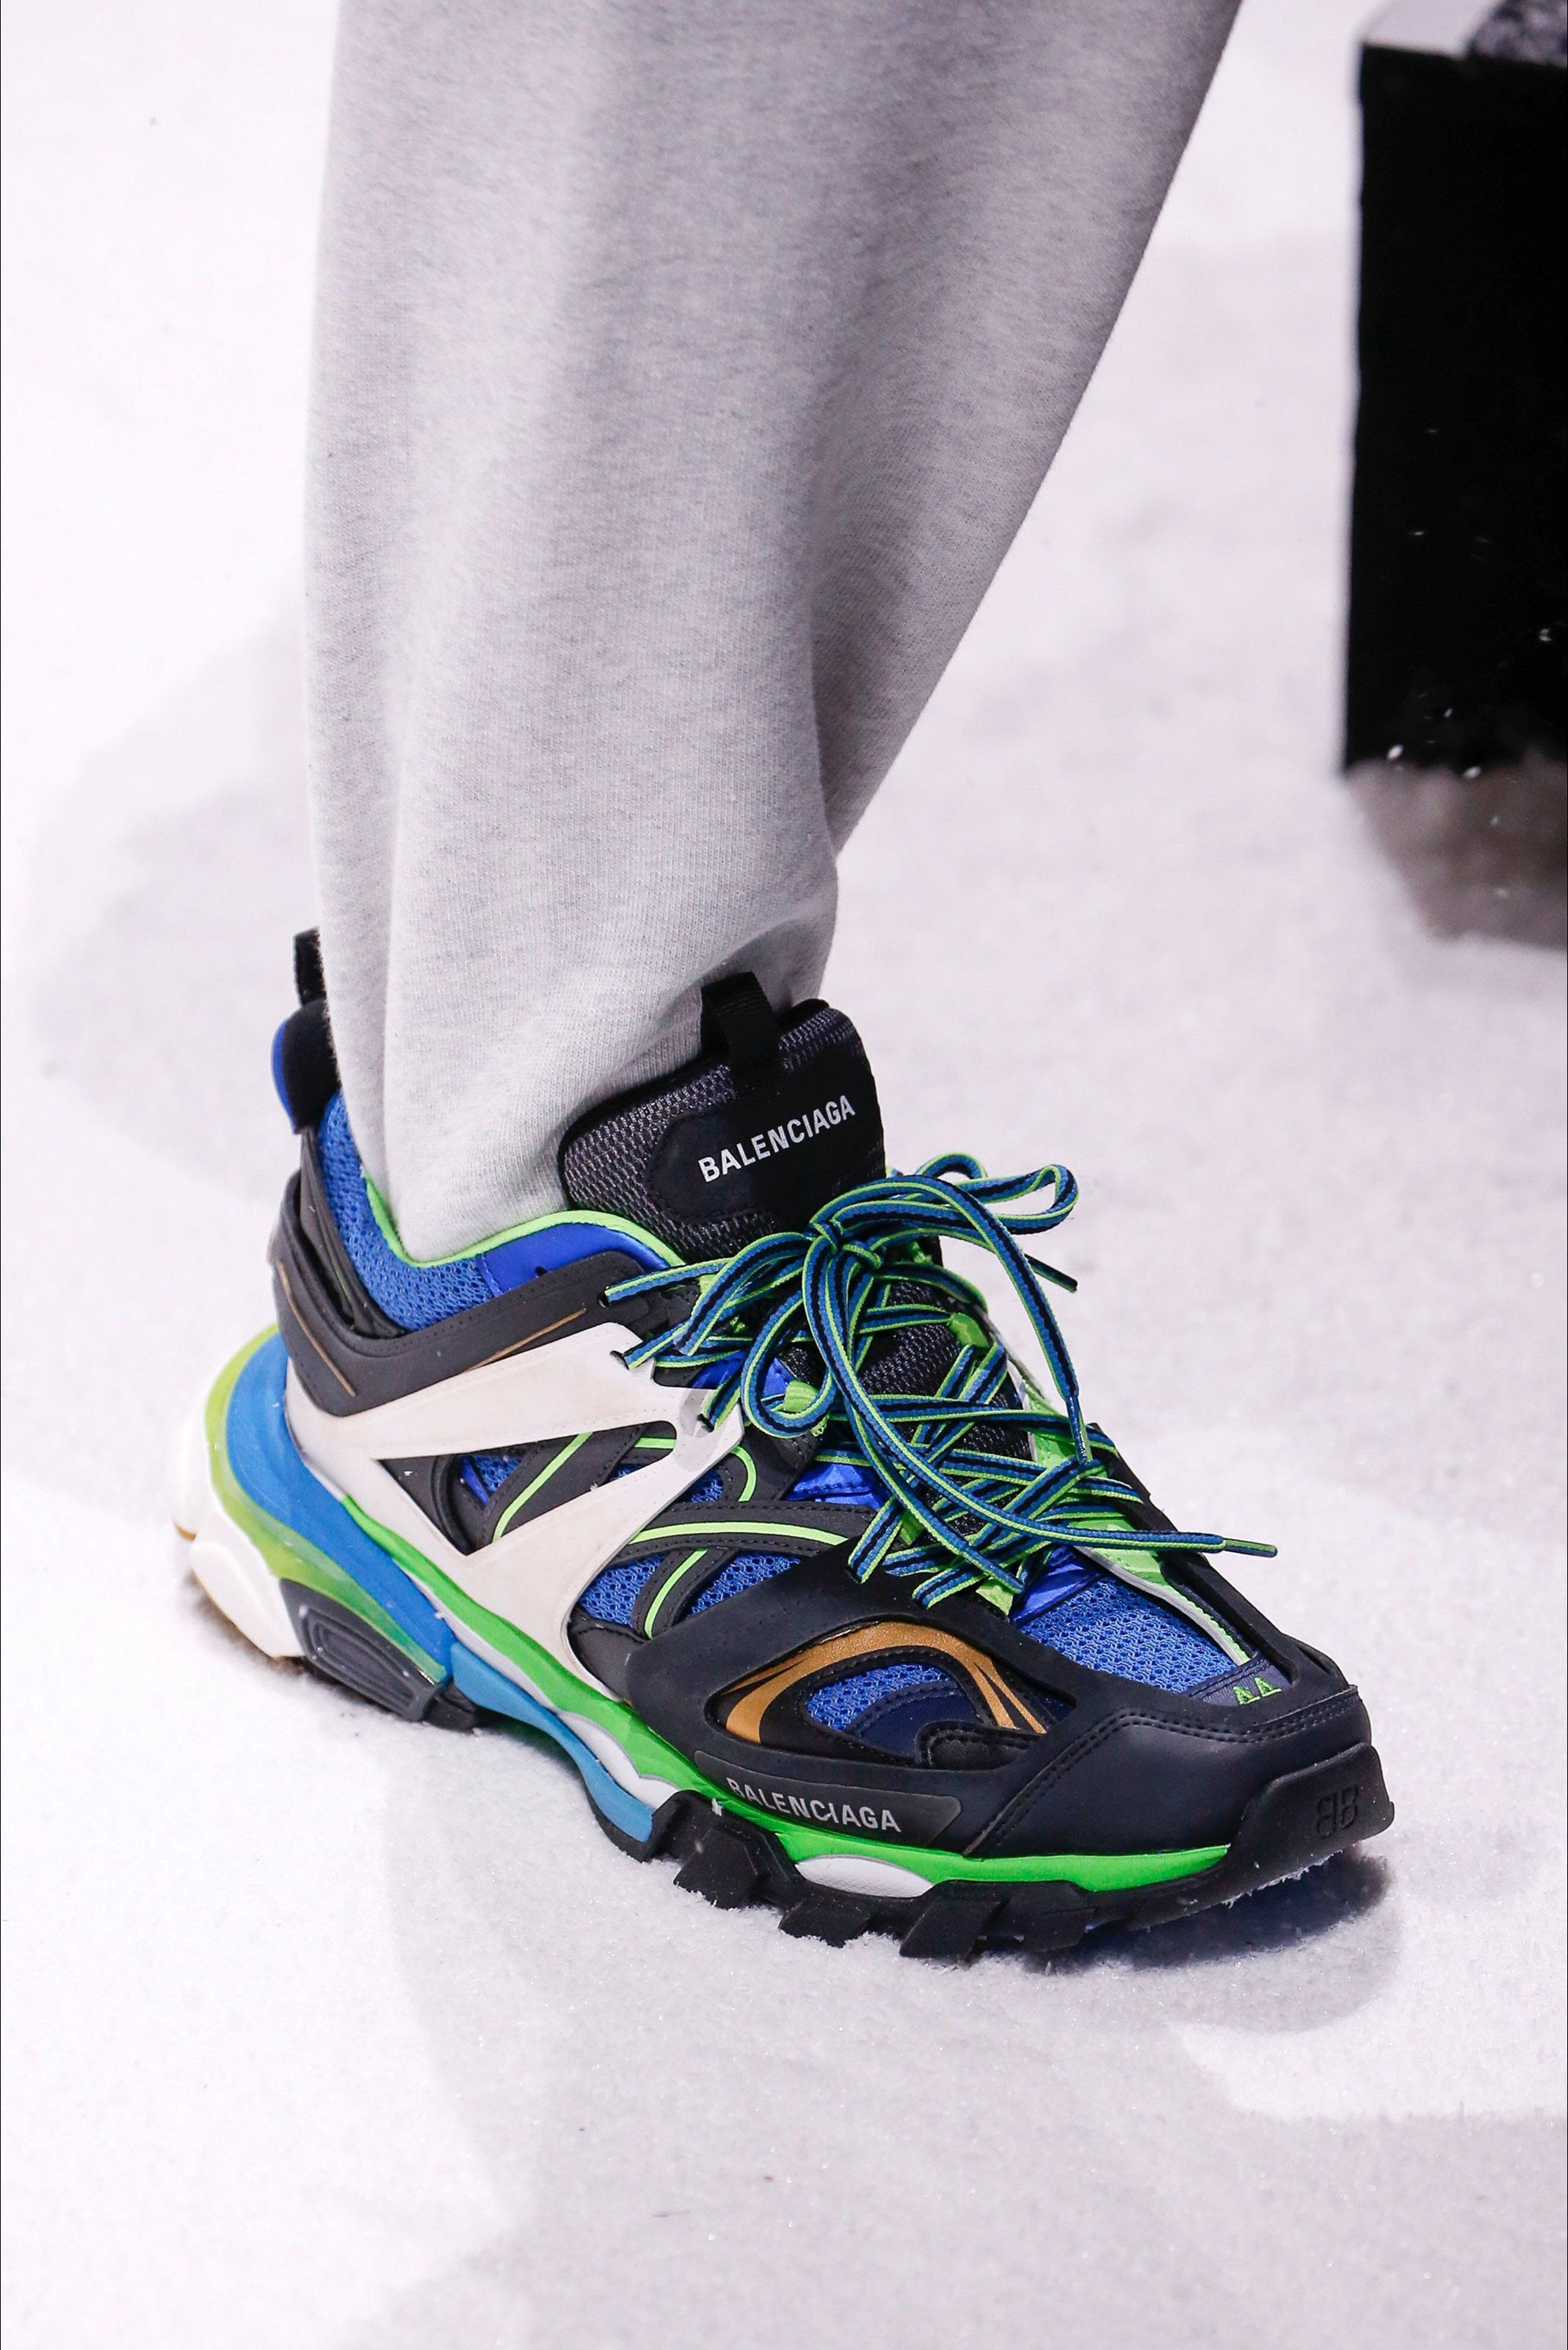 32929a6a19 Track Balenciaga Shoes Sneakers Magazine Gentsome Sport xaaqYwrE